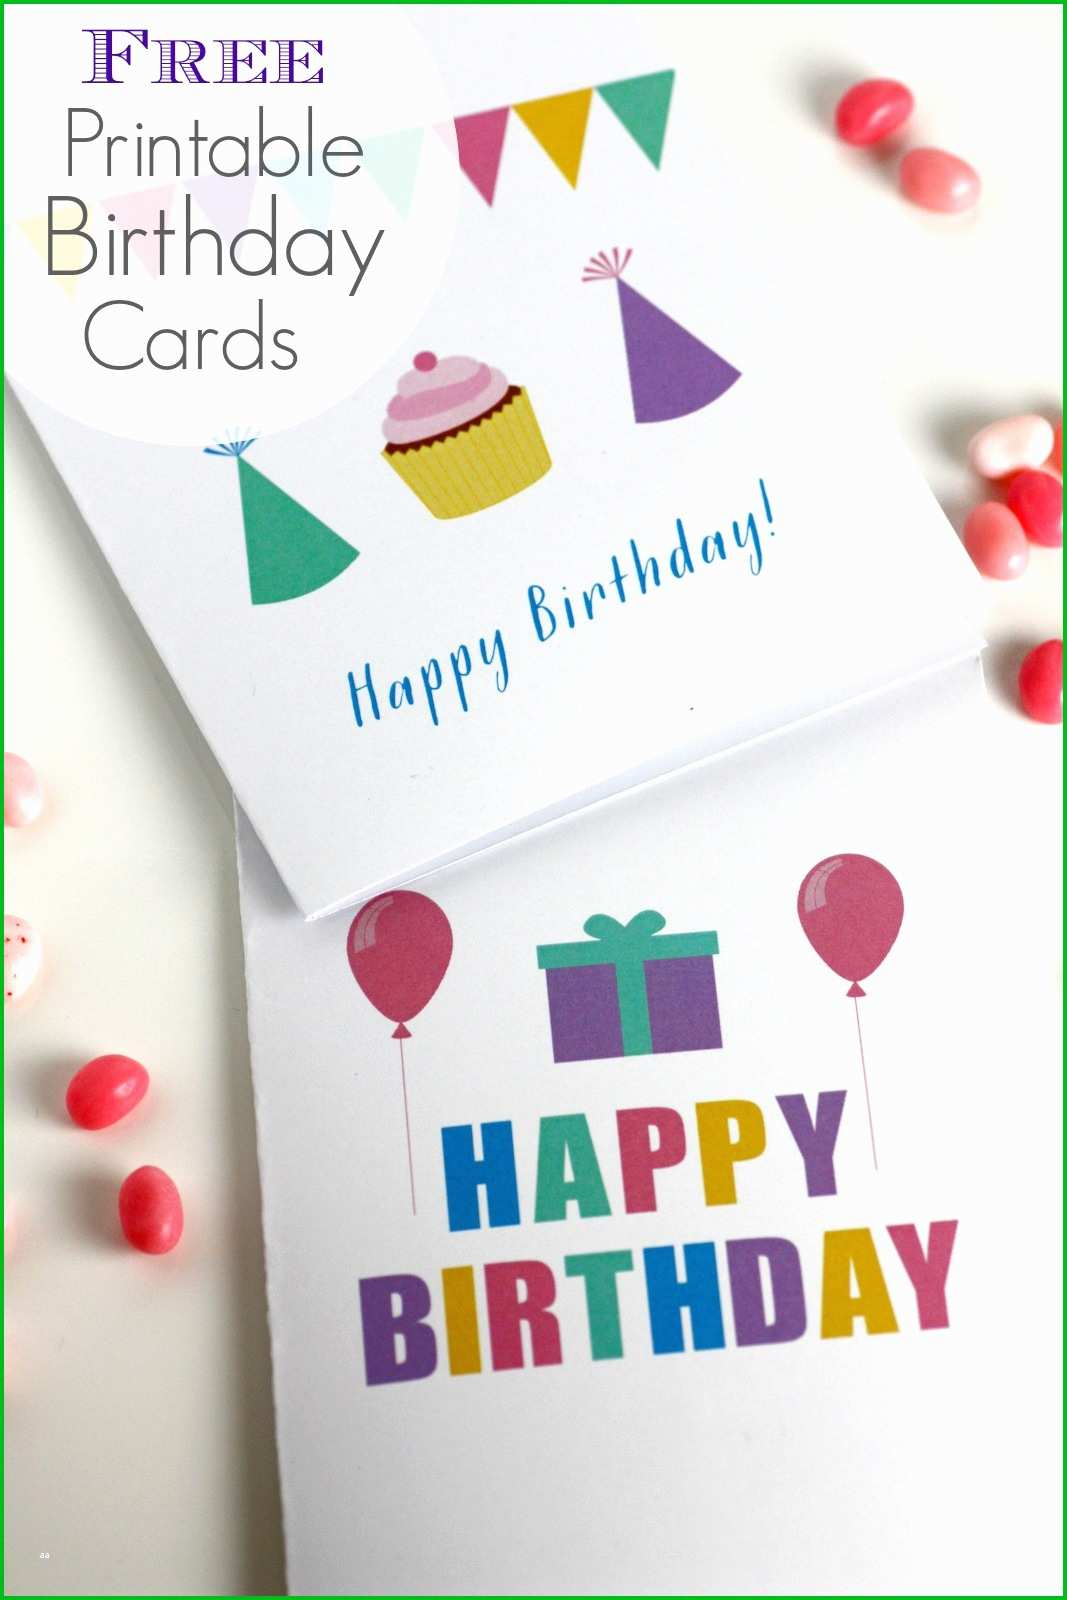 Printable Birthday Cards For Friends Funny ✓ The Christmas Gifts - Free Printable Funny Birthday Cards For Adults